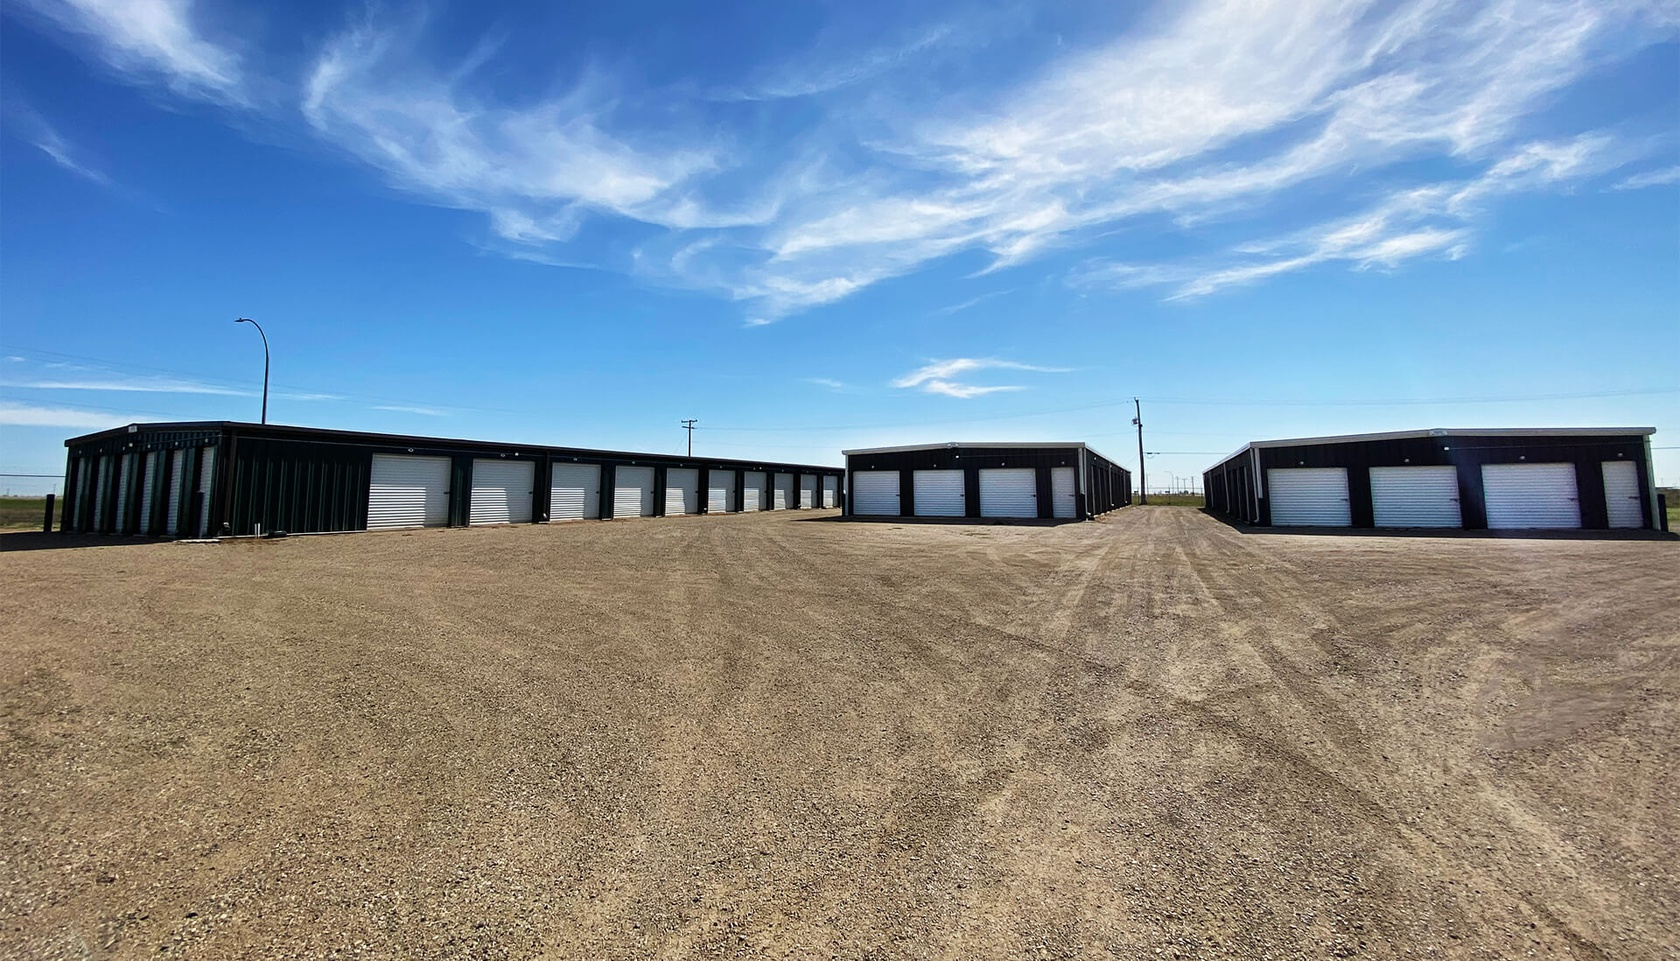 Rent Moose Jaw storage units at 123 Diefenbaker Dr. We offer a wide-range of affordable self storage units and your first 4 weeks are free!